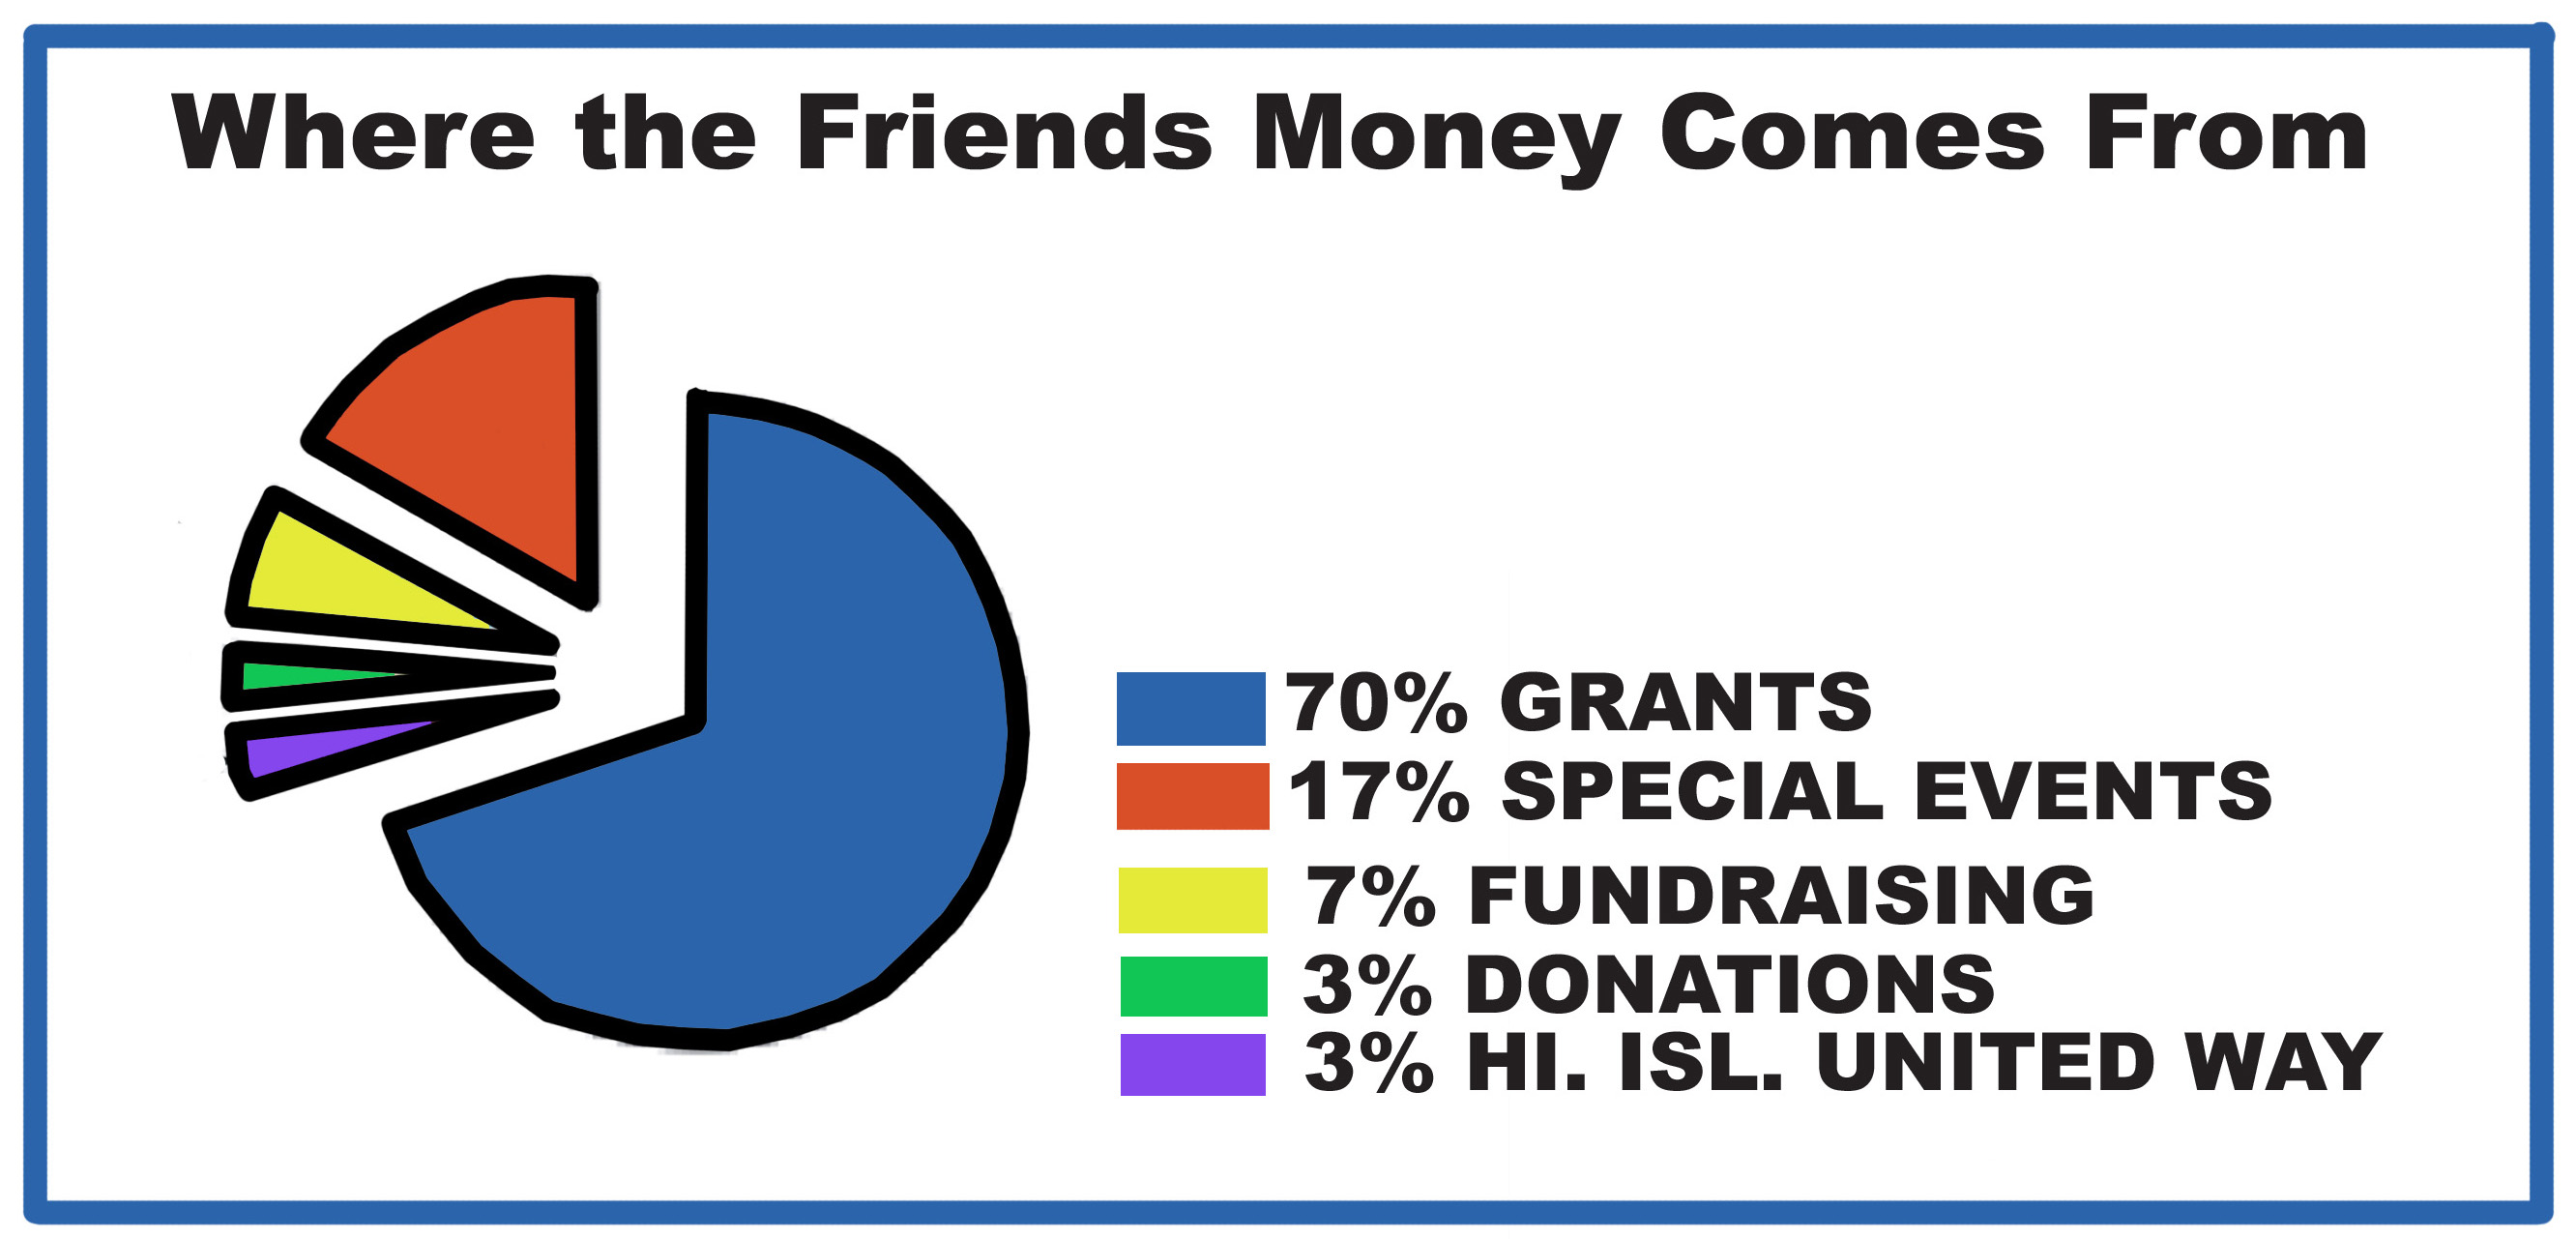 This is a chart showing our income sources, 70% Grants, 17% Special Events, 7% Fundraising, 3% Donations and 3% from HI. Isl. United Way.